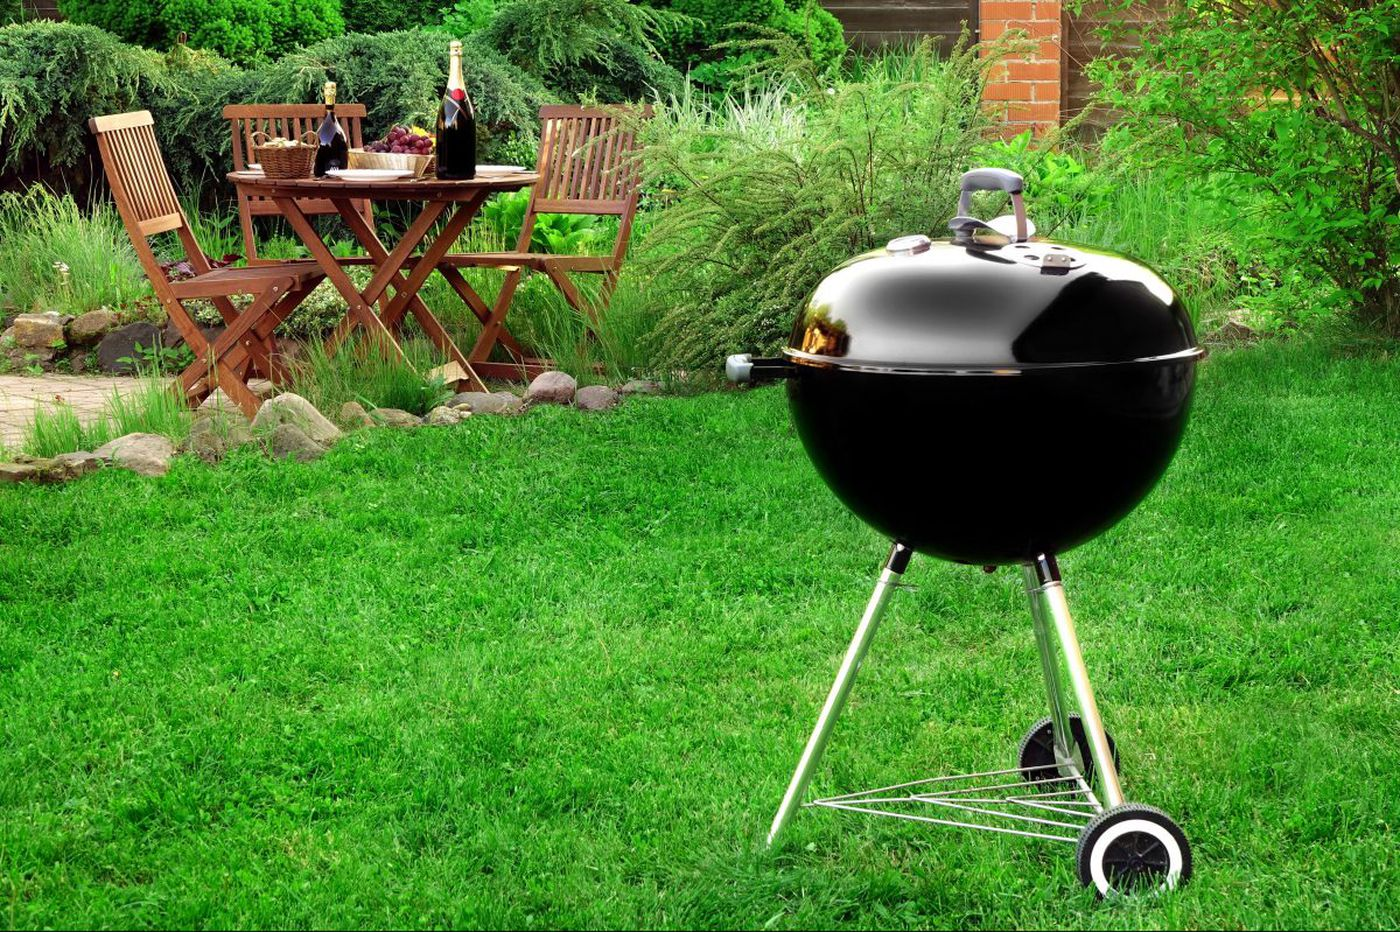 Ask Jennifer Adams: How can you disguise a grill in the front yard?